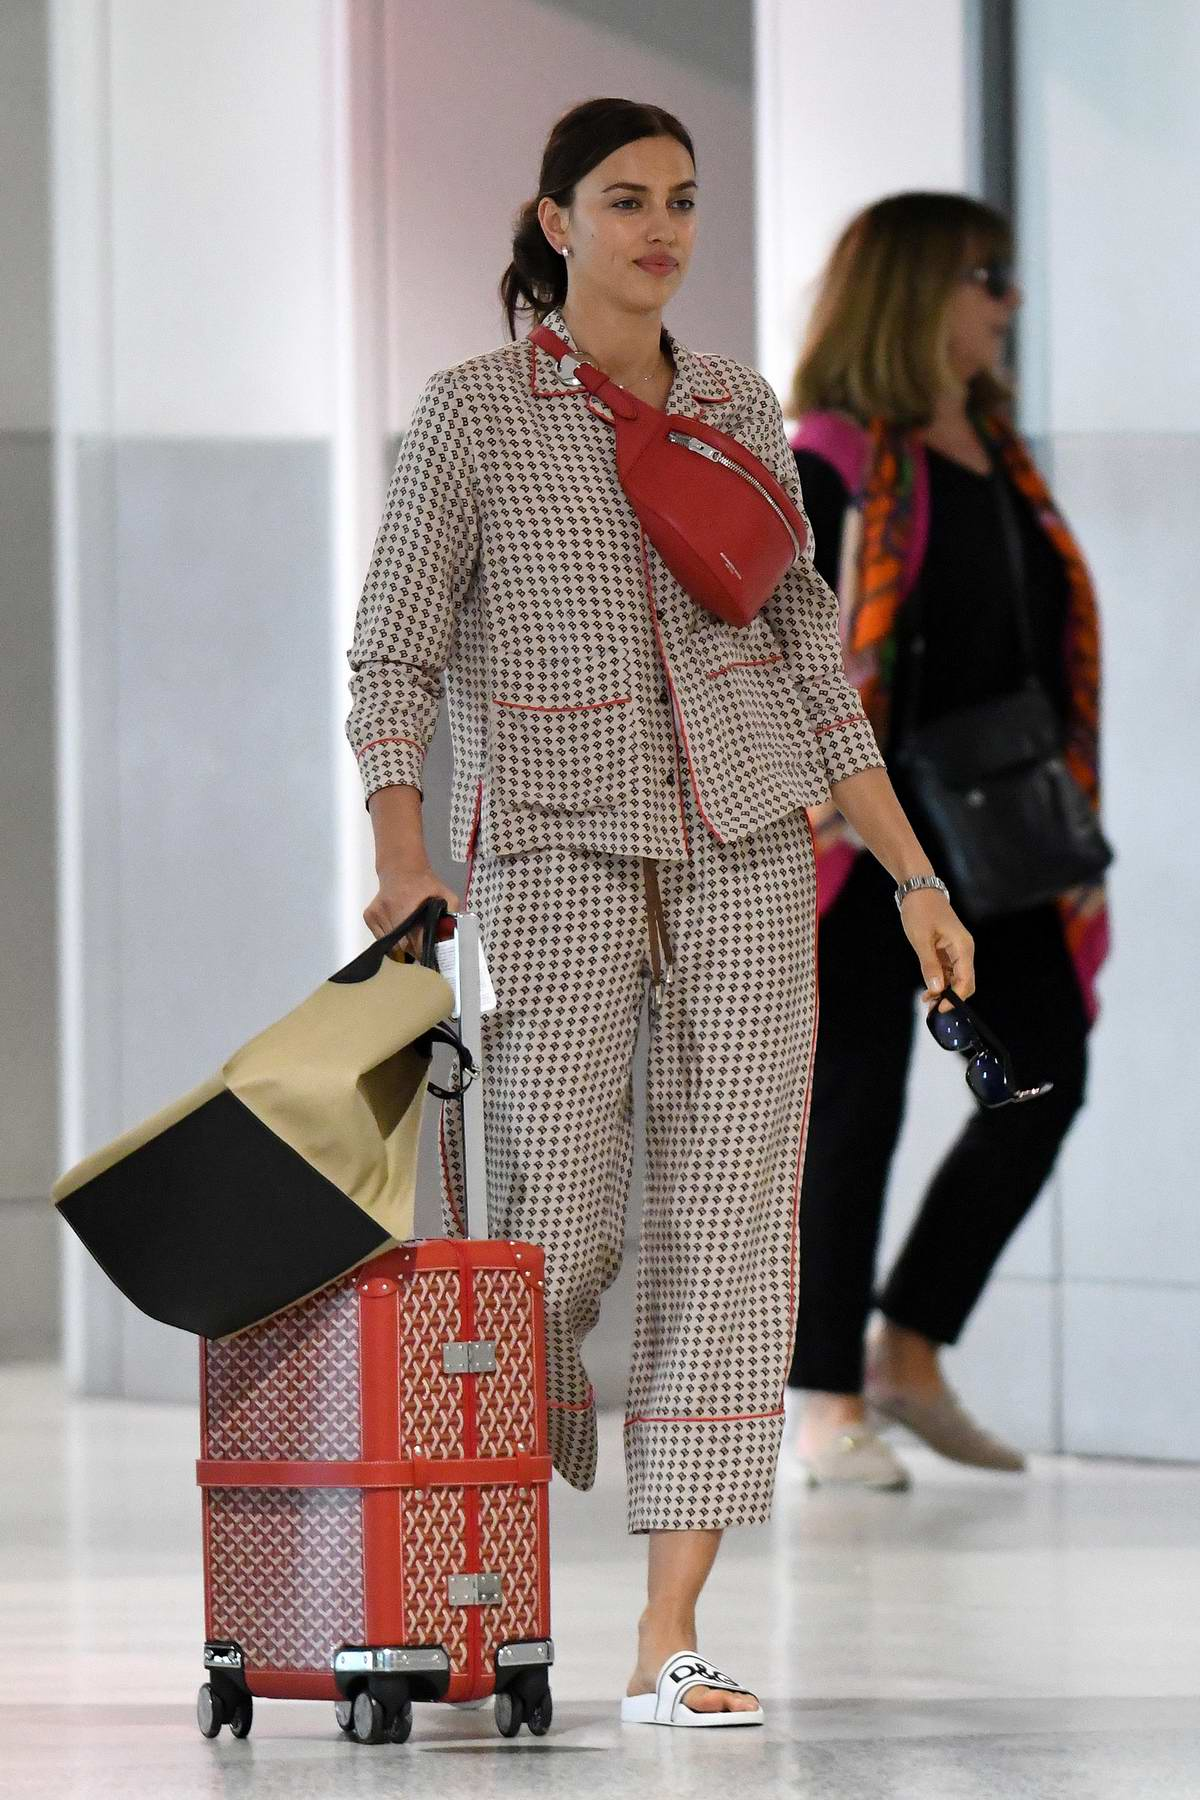 Irina Shayk spotted during a travel themed photoshoot at the Miami international airport, Miami, Florida